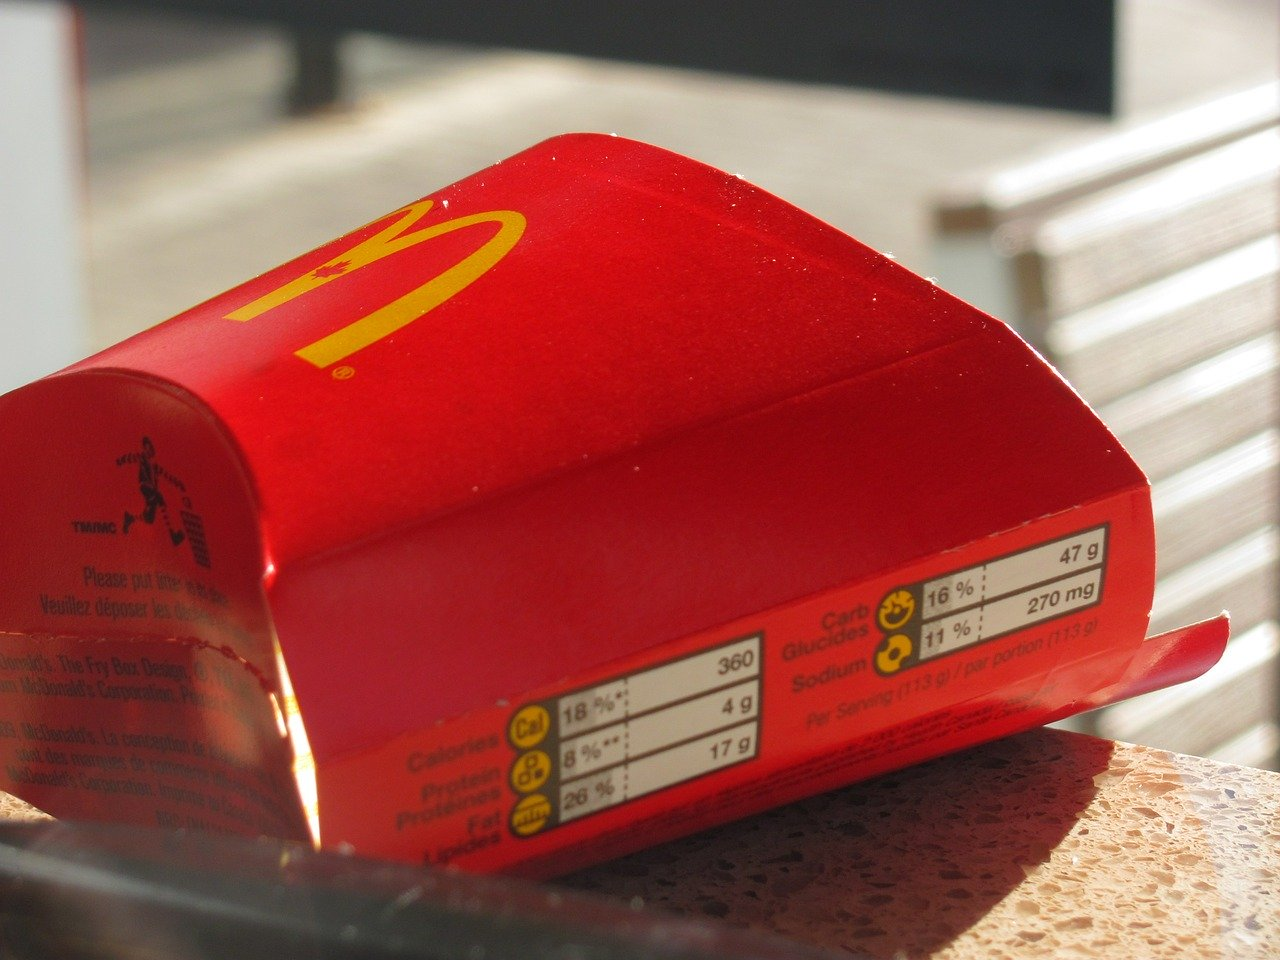 Free McDonald's Meals for Healthcare Workers and First Responders Until May 5th – Interview